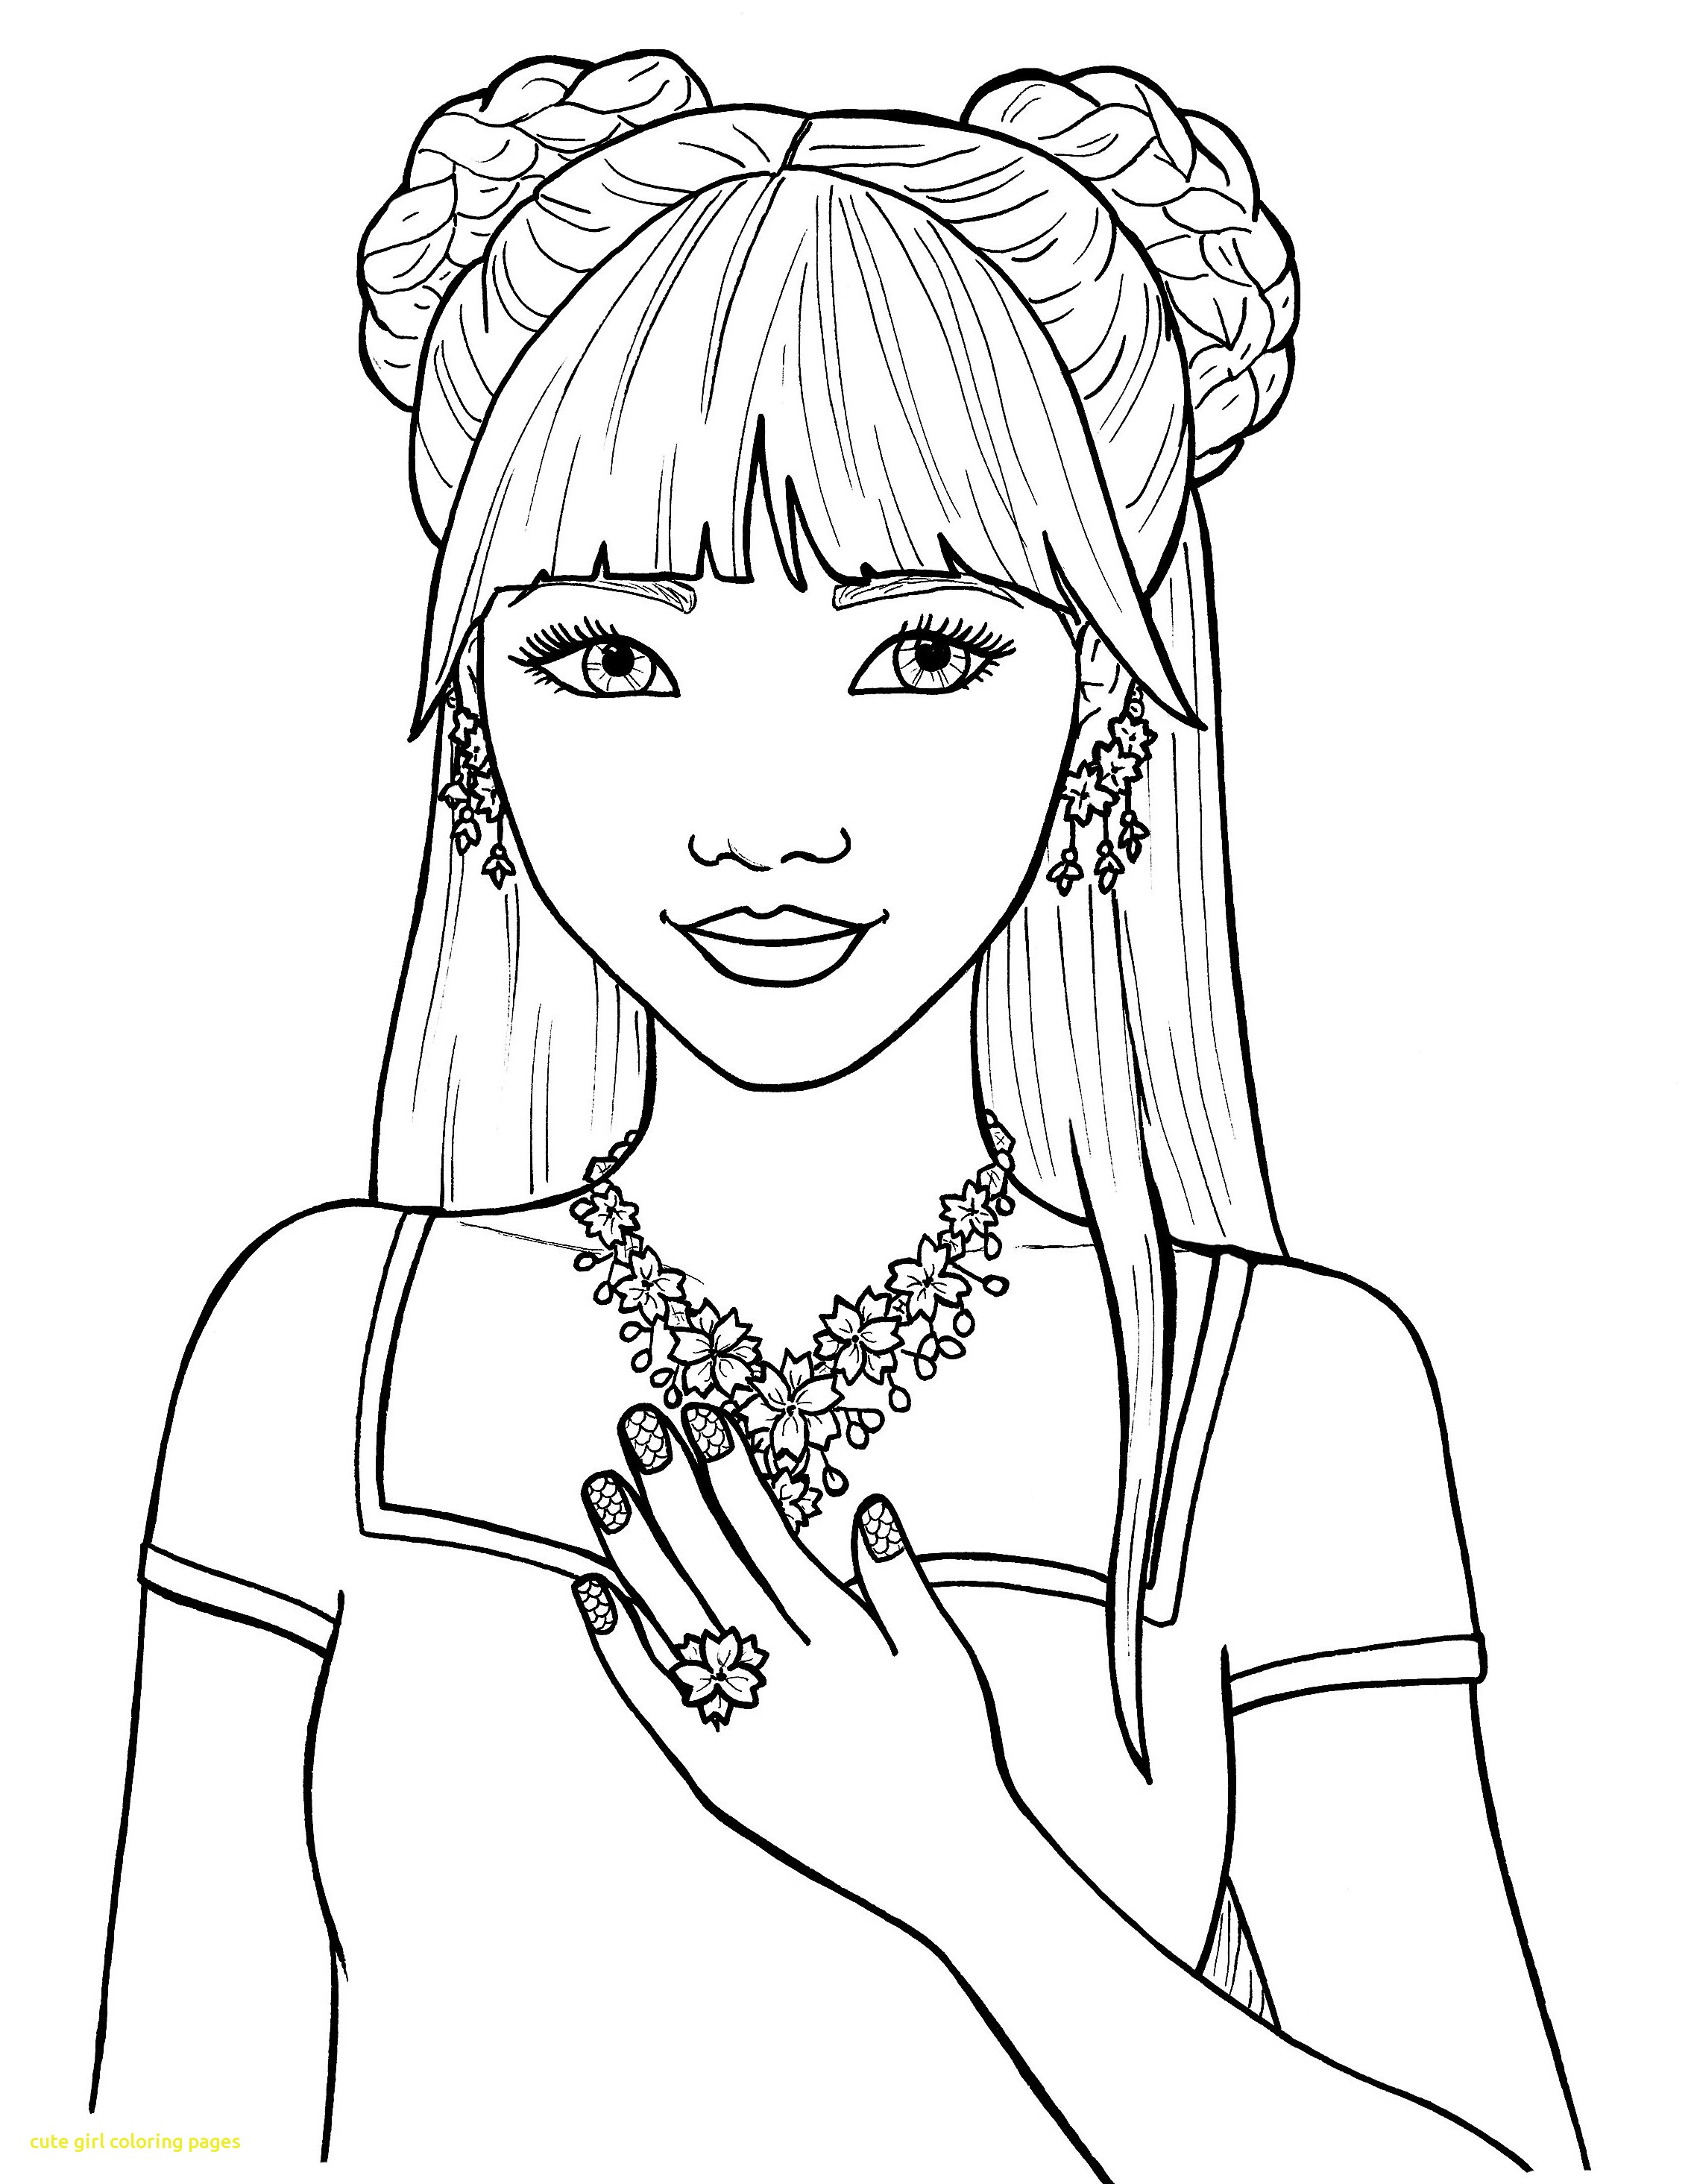 coloring girl sheets girls coloring pages the sun flower pages sheets girl coloring